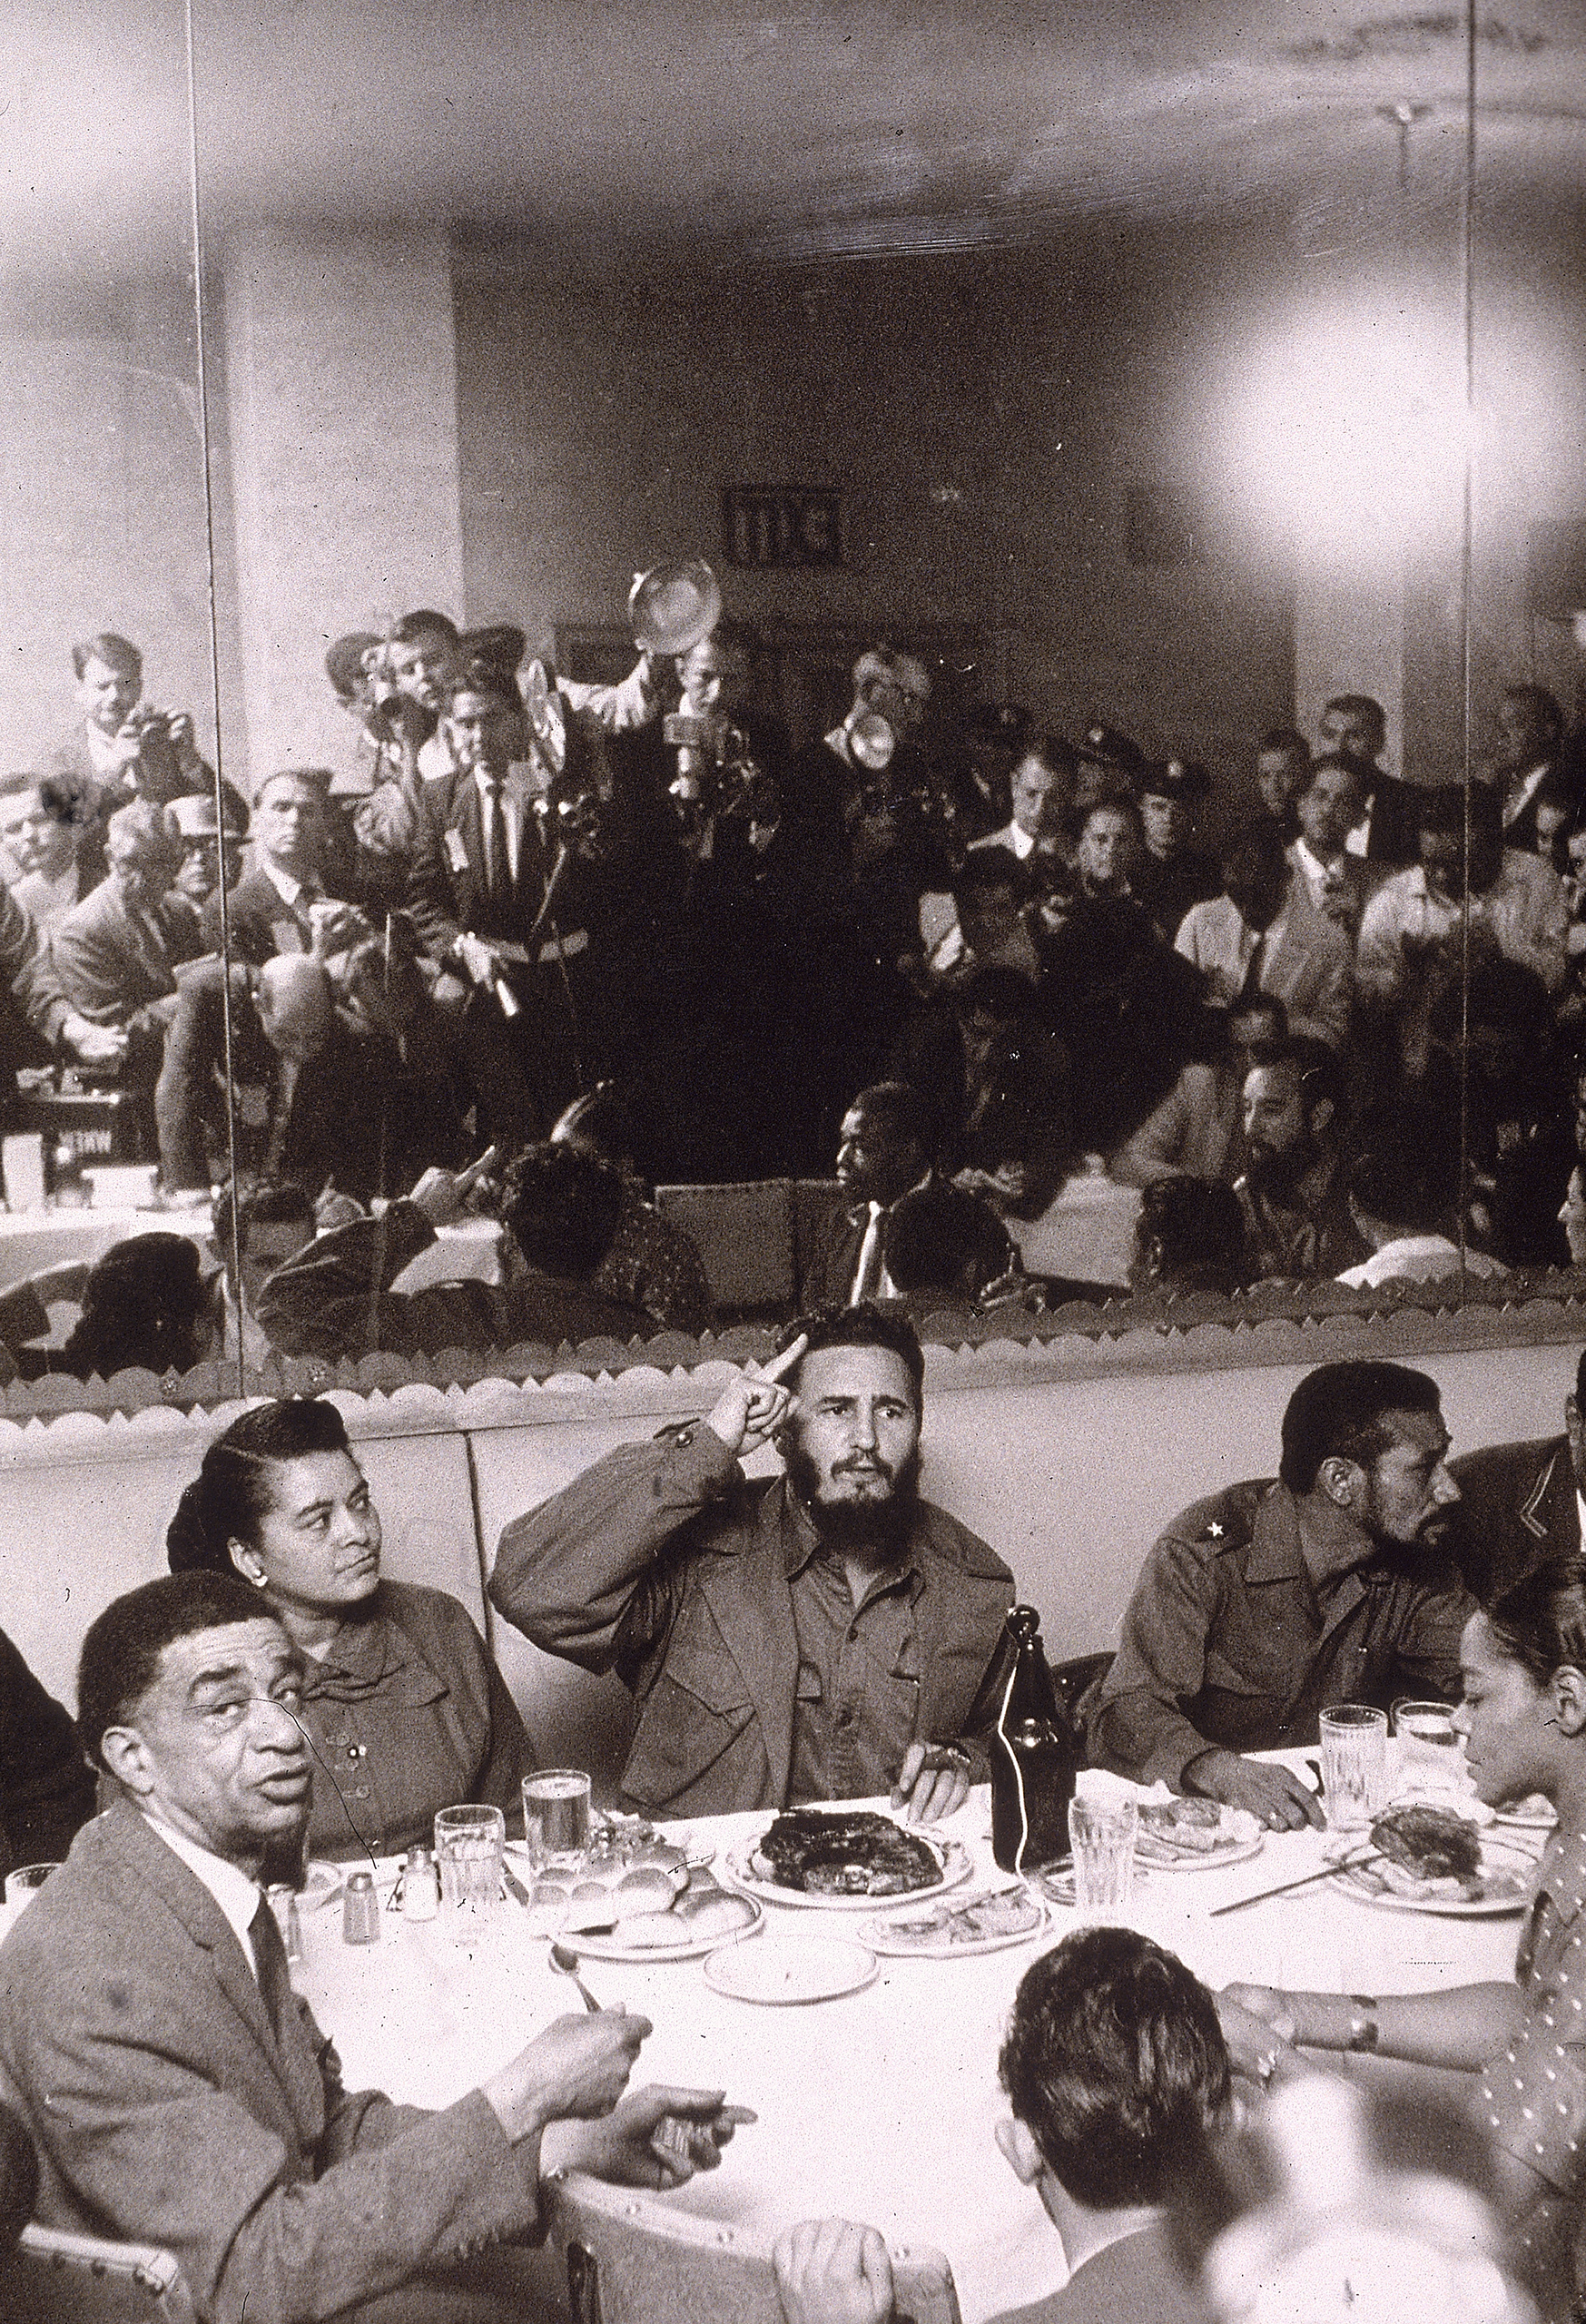 Cuban President Fidel Castro entertains a group of people at a dinner table in Harlem during a trip to New York City, as the press takes photographs in the background, 1959.